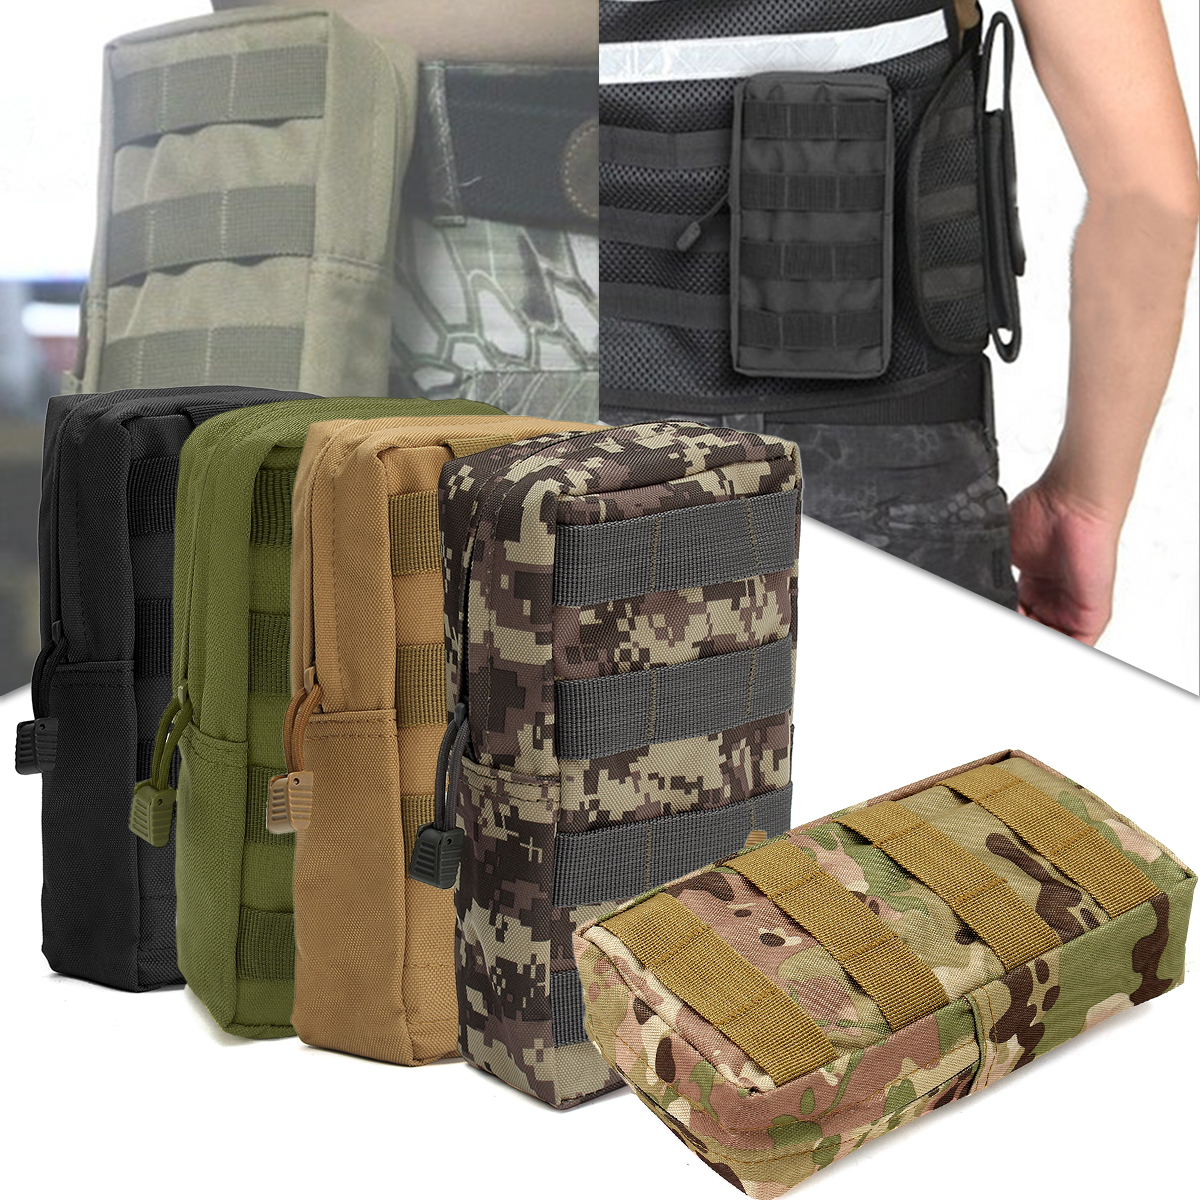 Safurance Nylon Tactical Molle Waist Bag Medical First Aid Utility Emergency Pouch Outdoor Storage Bag Emergency Kits ...